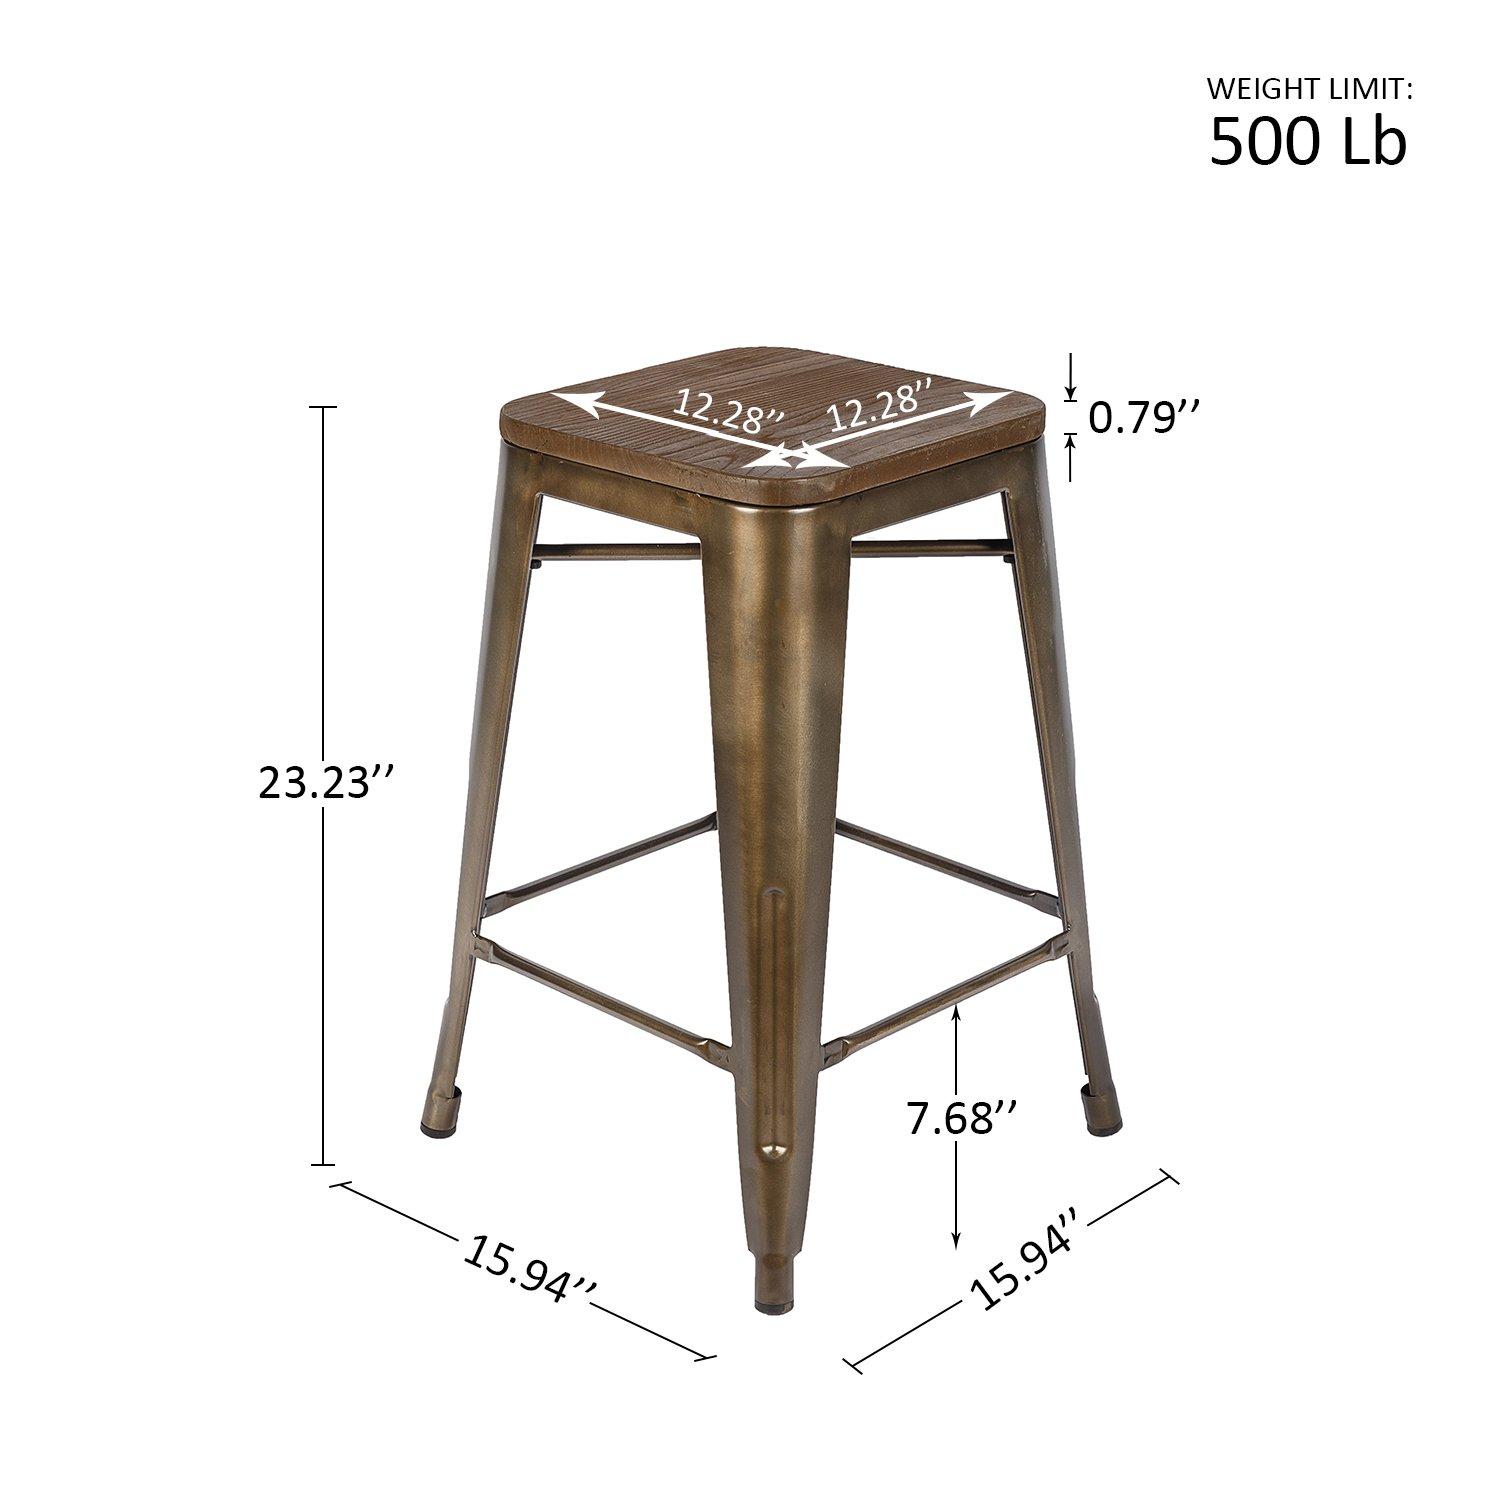 LCH 24 Inch Patio Metal Industrial Bar Stools, Set of 4 Indoor/Outdoor Counter Stackable Barstool with Wood Seat, 500 LB Limit, Antique Copper by LCH (Image #6)